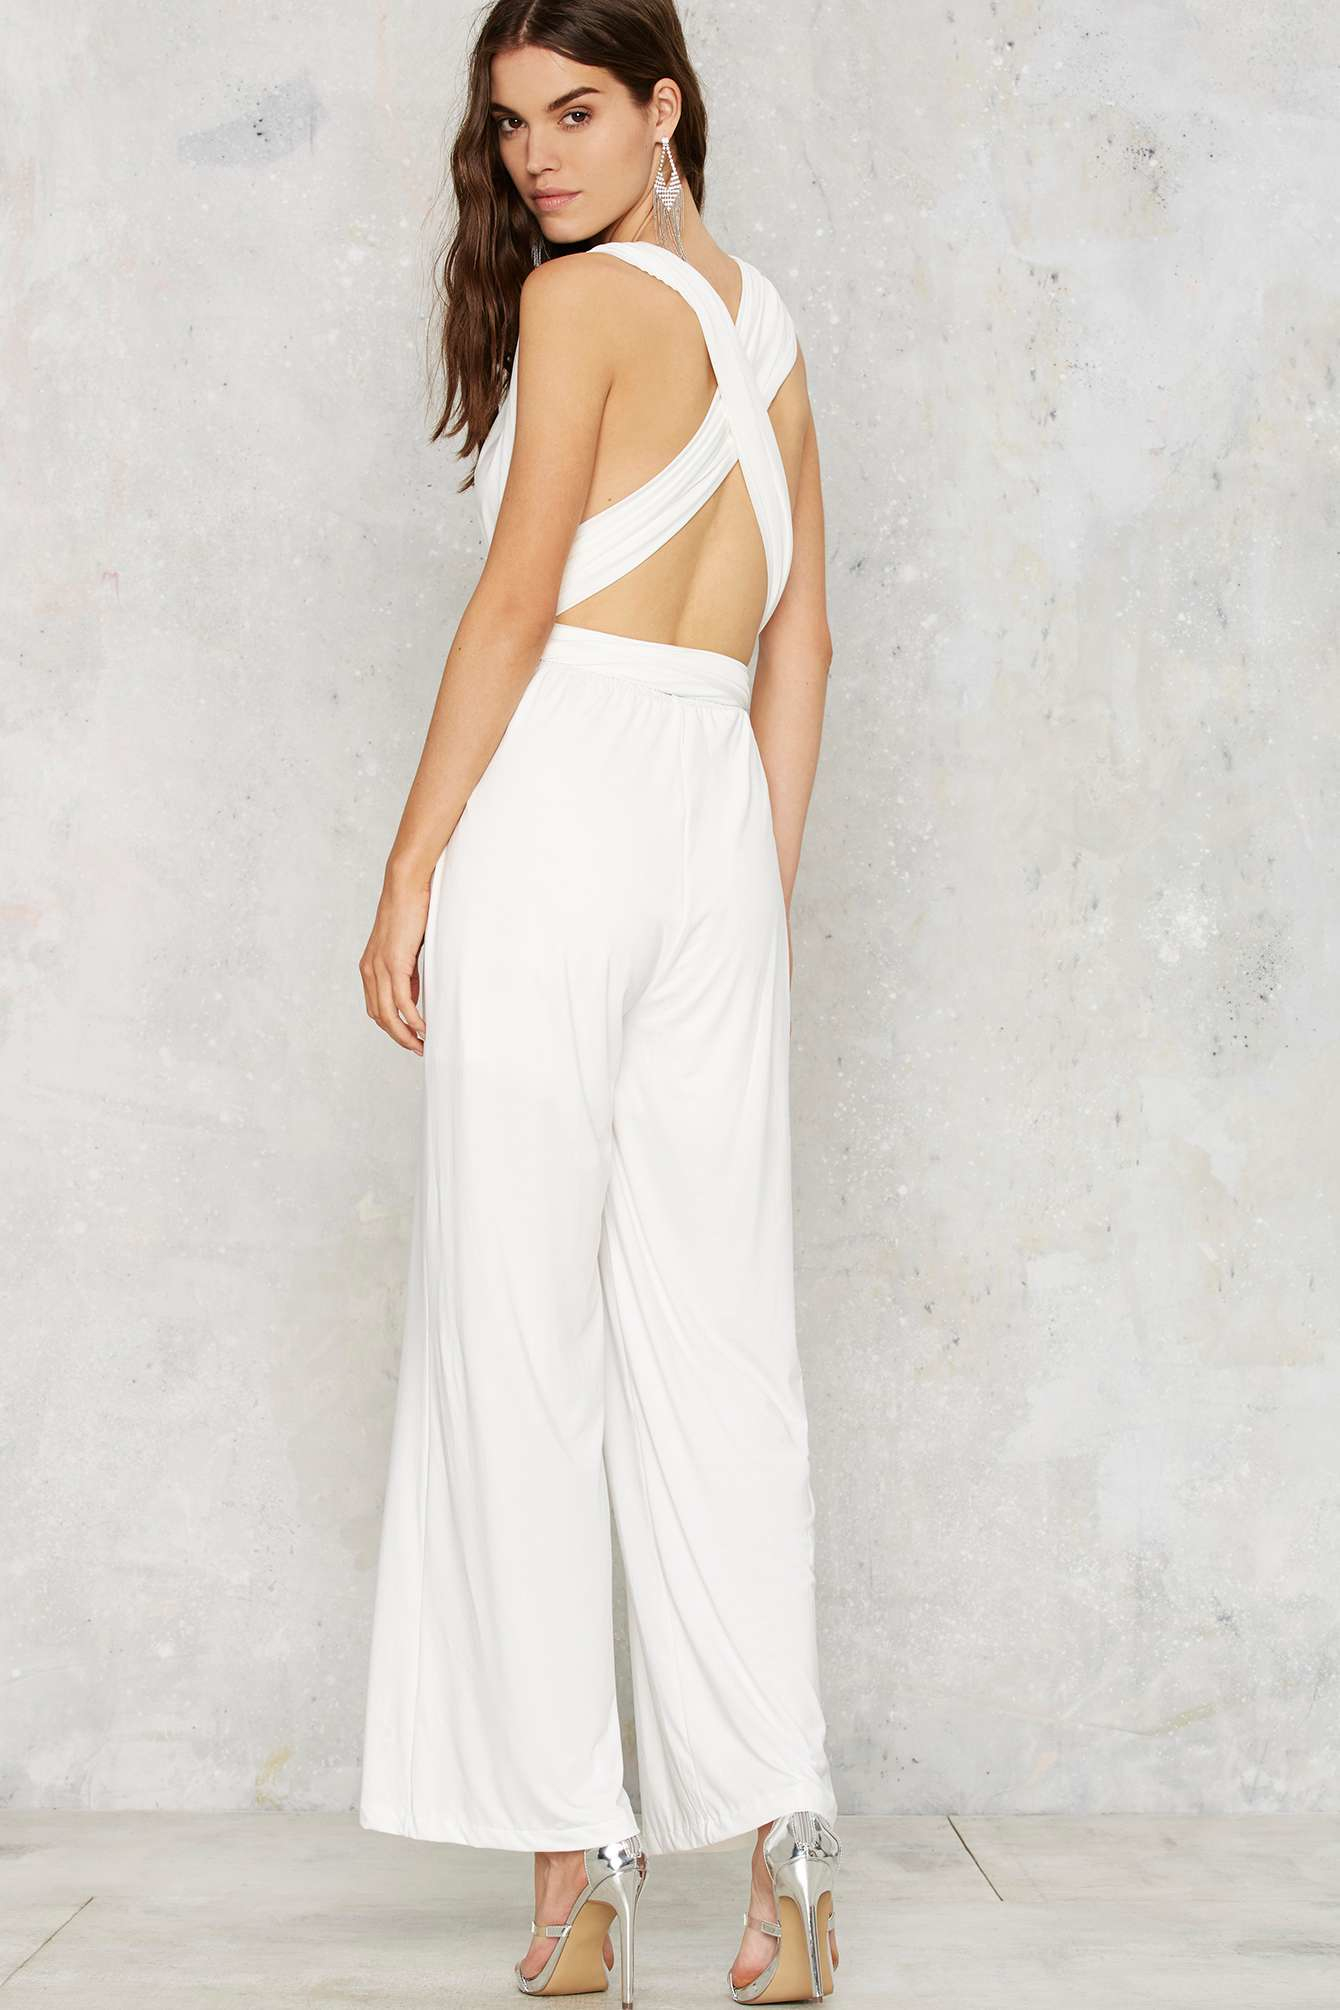 b4e7dcb5ced5 Lyst - Nasty Gal All Time Low Halter Jumpsuit - White in White